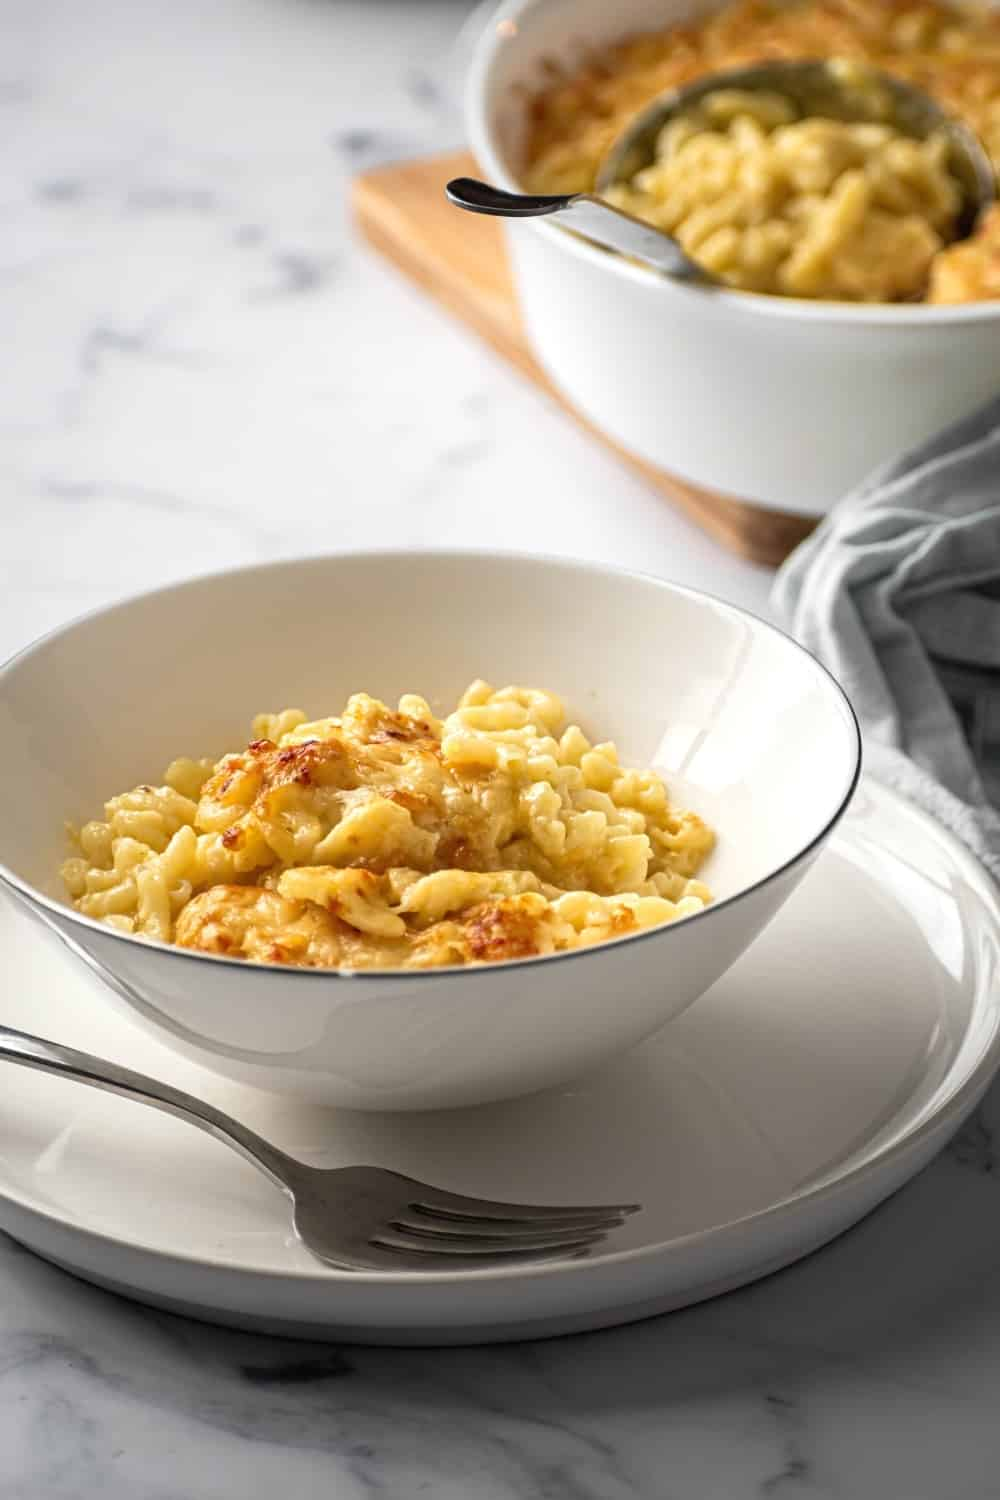 A white bowl with mac & cheese in it on a white plate. There is a fork on the plate and the plate is on a white counter. Behind it is part of a white dish with mac & cheese in it.